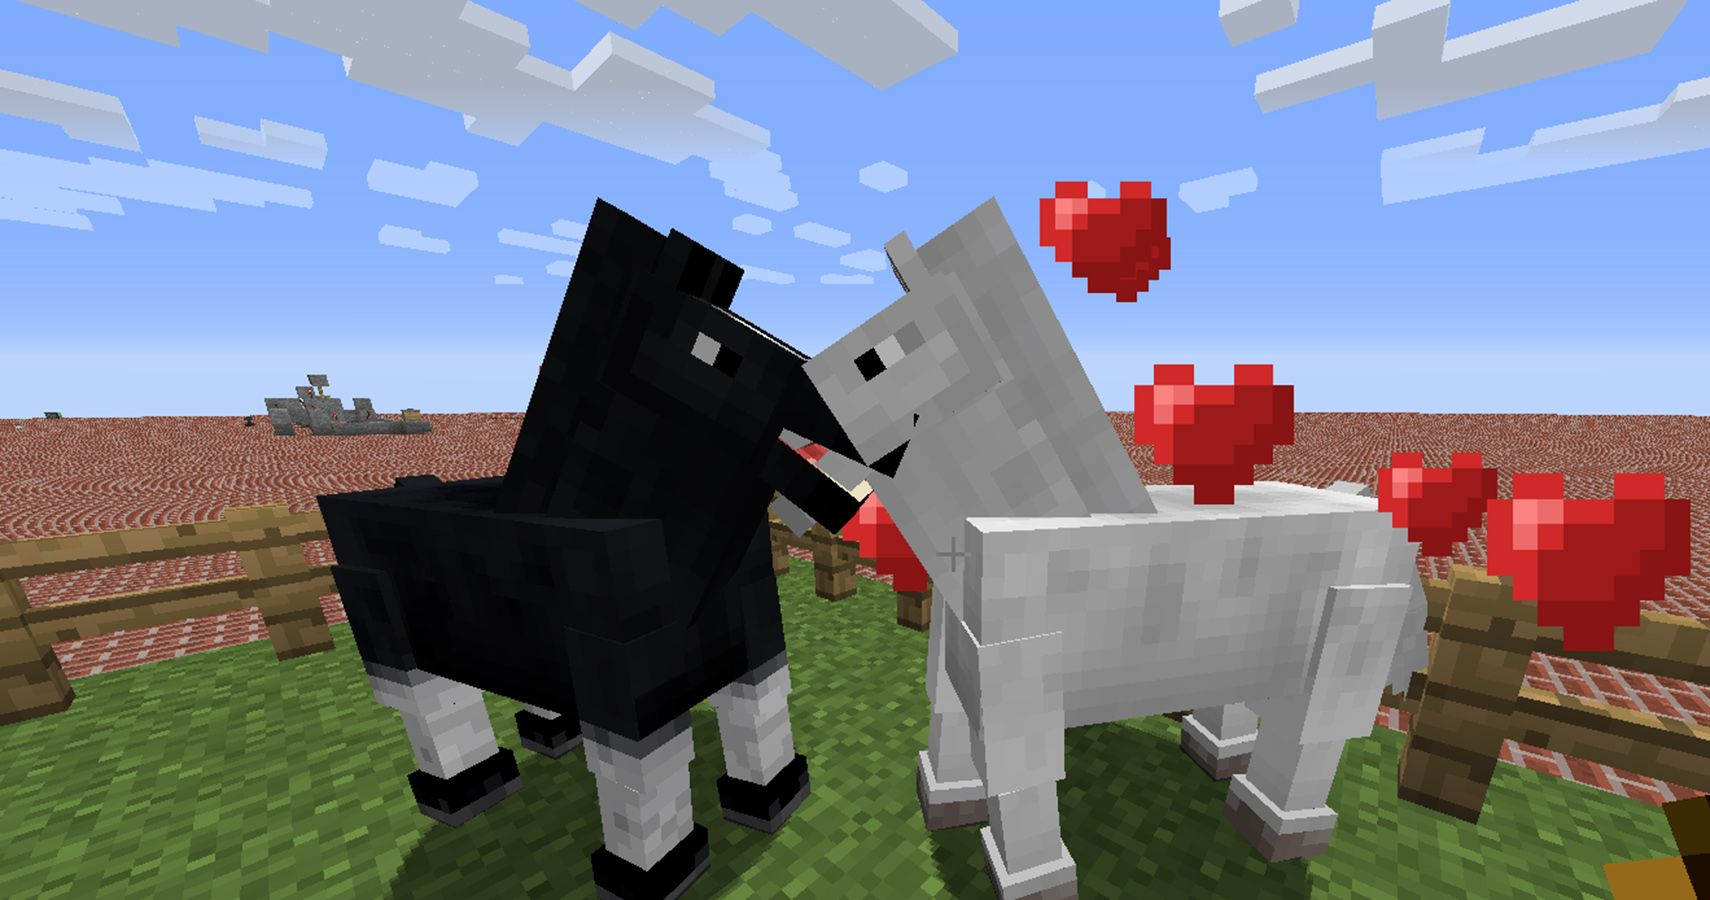 How To Breed Horses In Minecraft Minecraft Guides